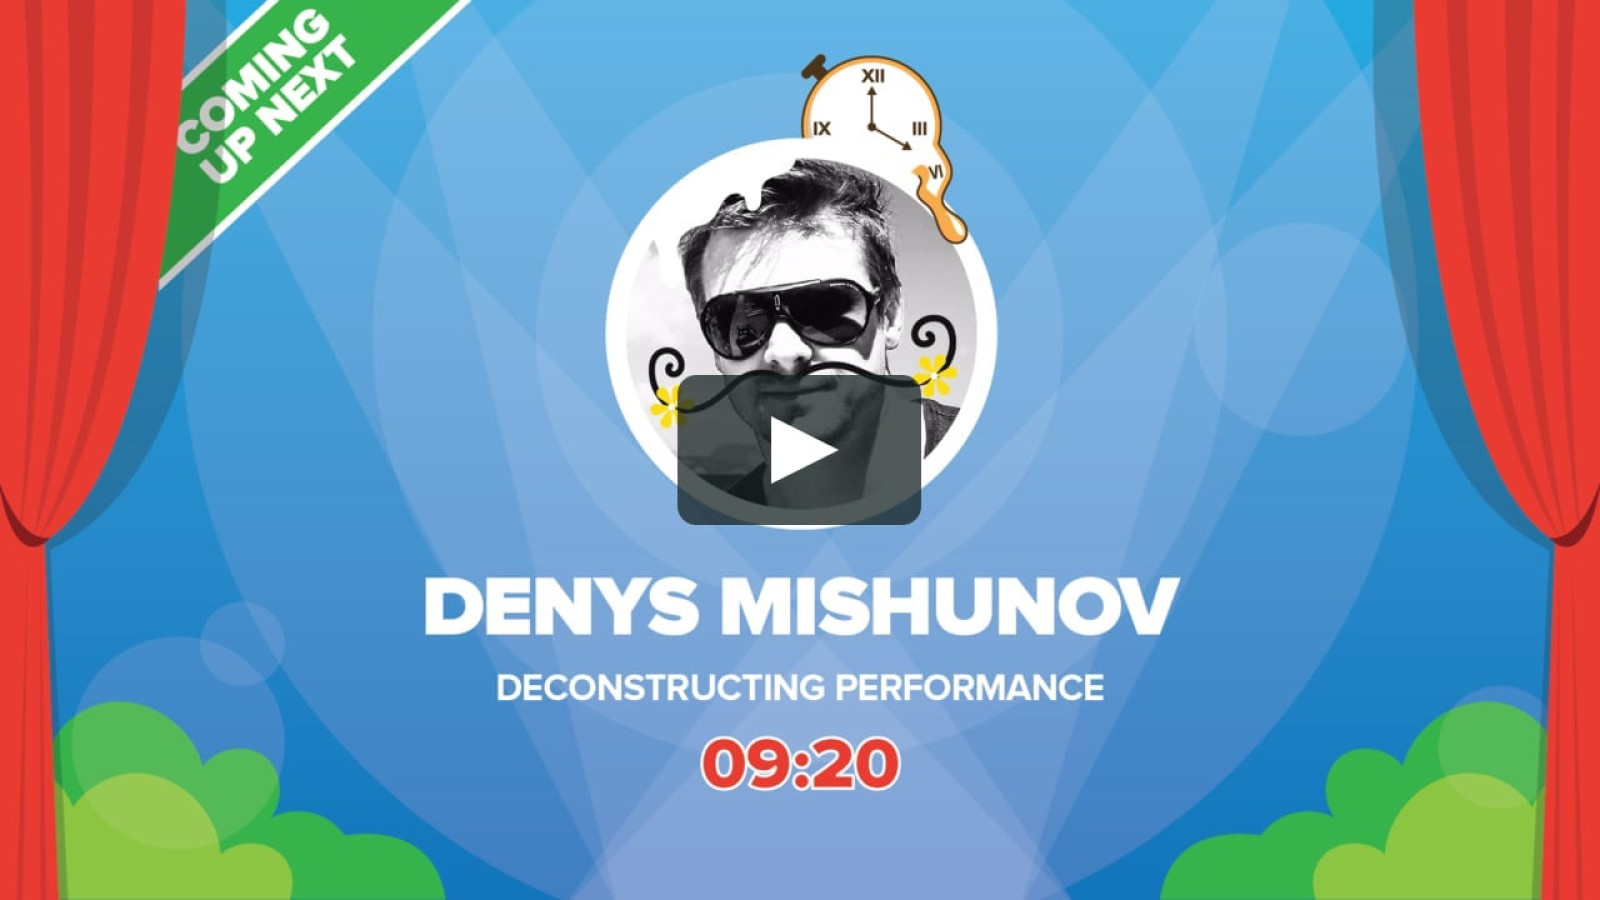 Deconstructing Performance